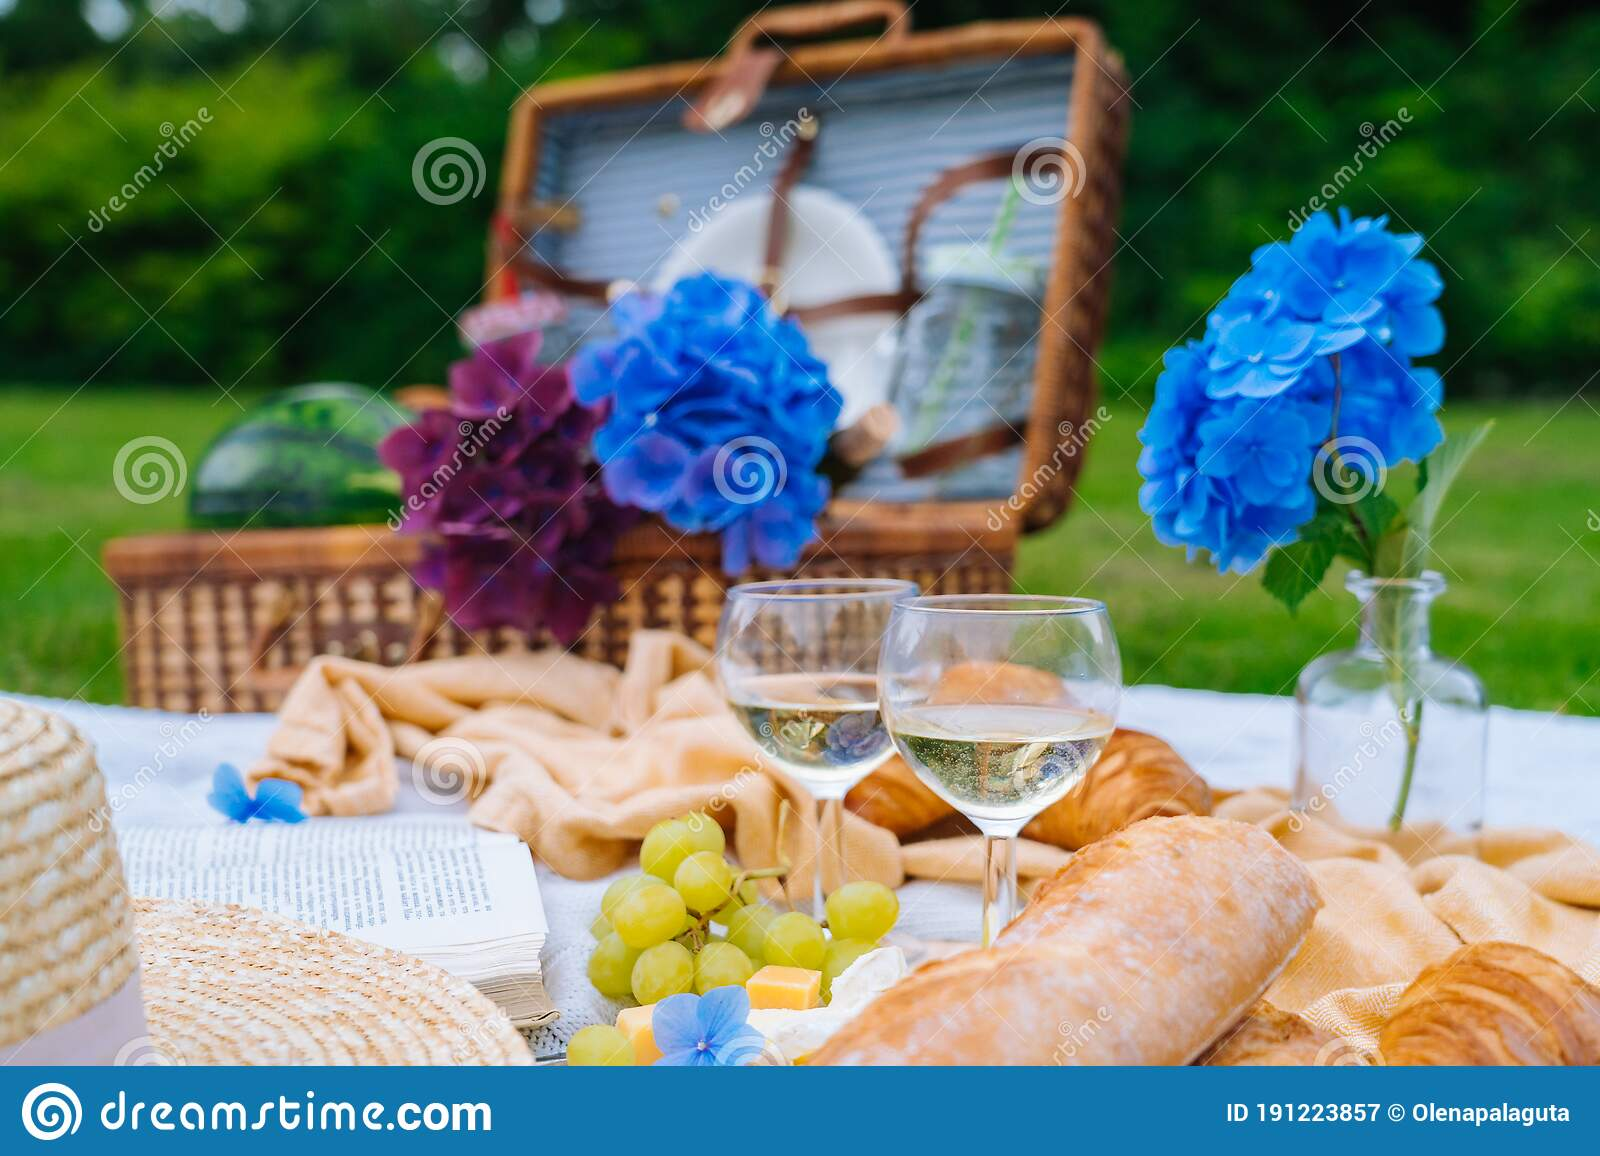 892 Picnic Basket Spring Flowers Wine Photos Free Royalty Free Stock Photos From Dreamstime